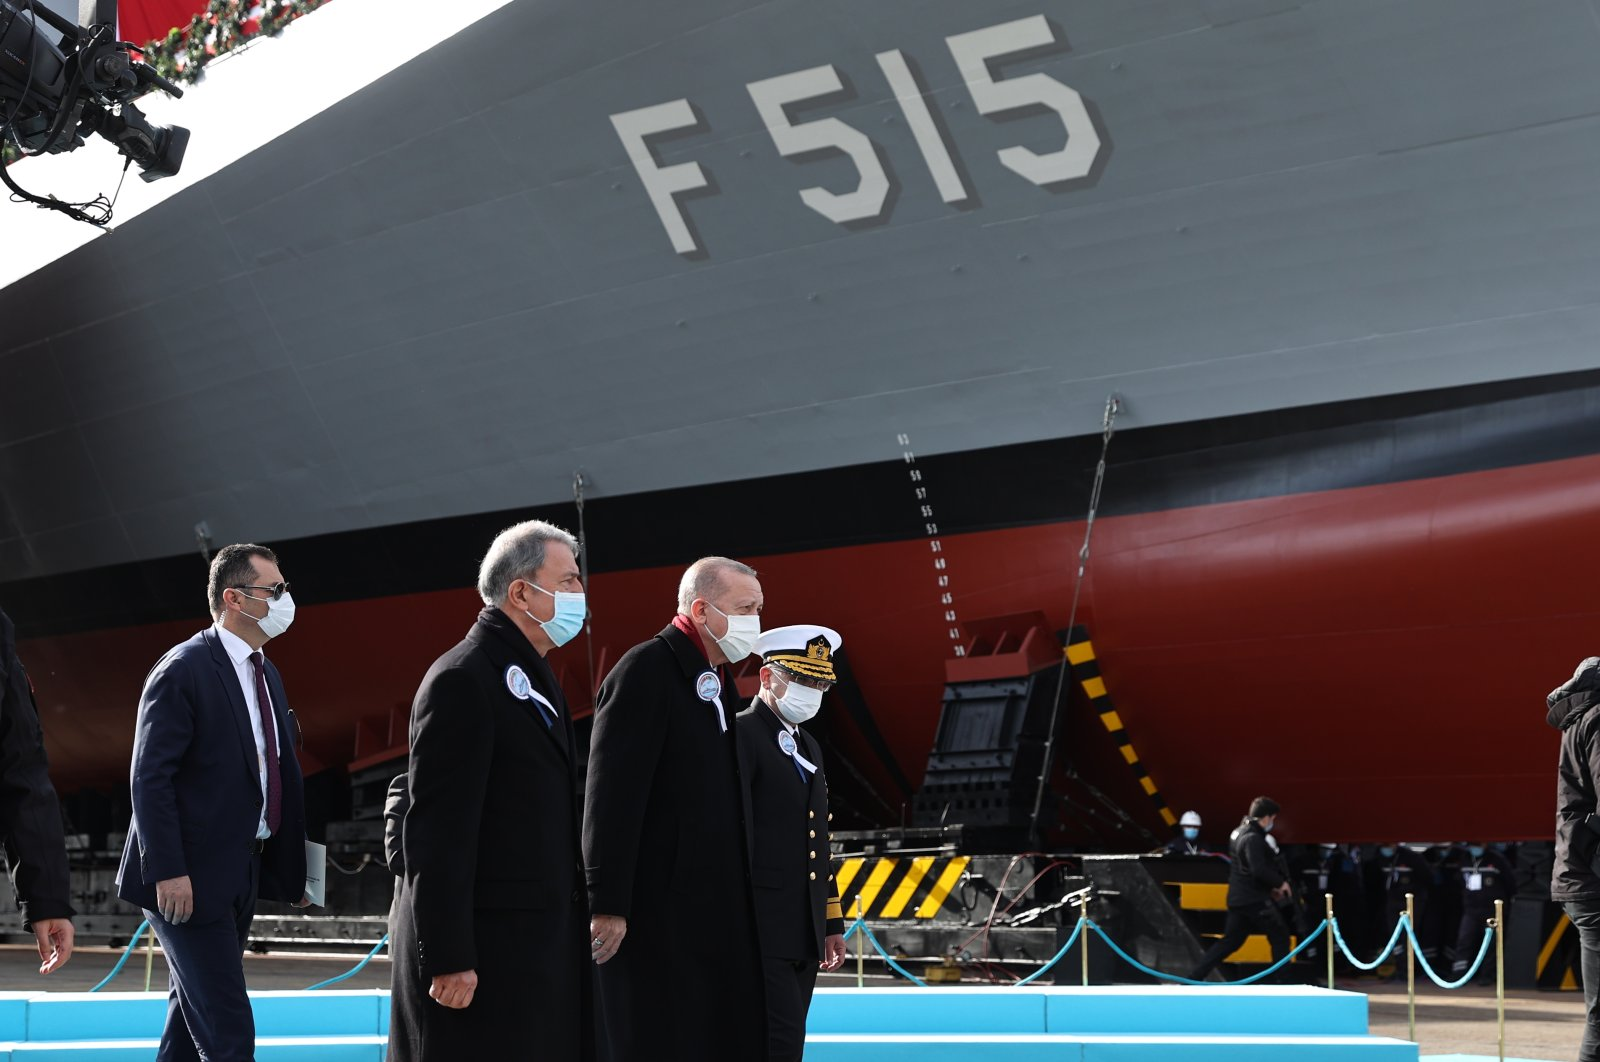 President Recep Tayyip Erdoğan (C) attends the launch ceremony of the Istanbul frigate with Defense Minster Hulusi Akar (L), Istanbul, Jan. 23, 2021. (AA Photo)